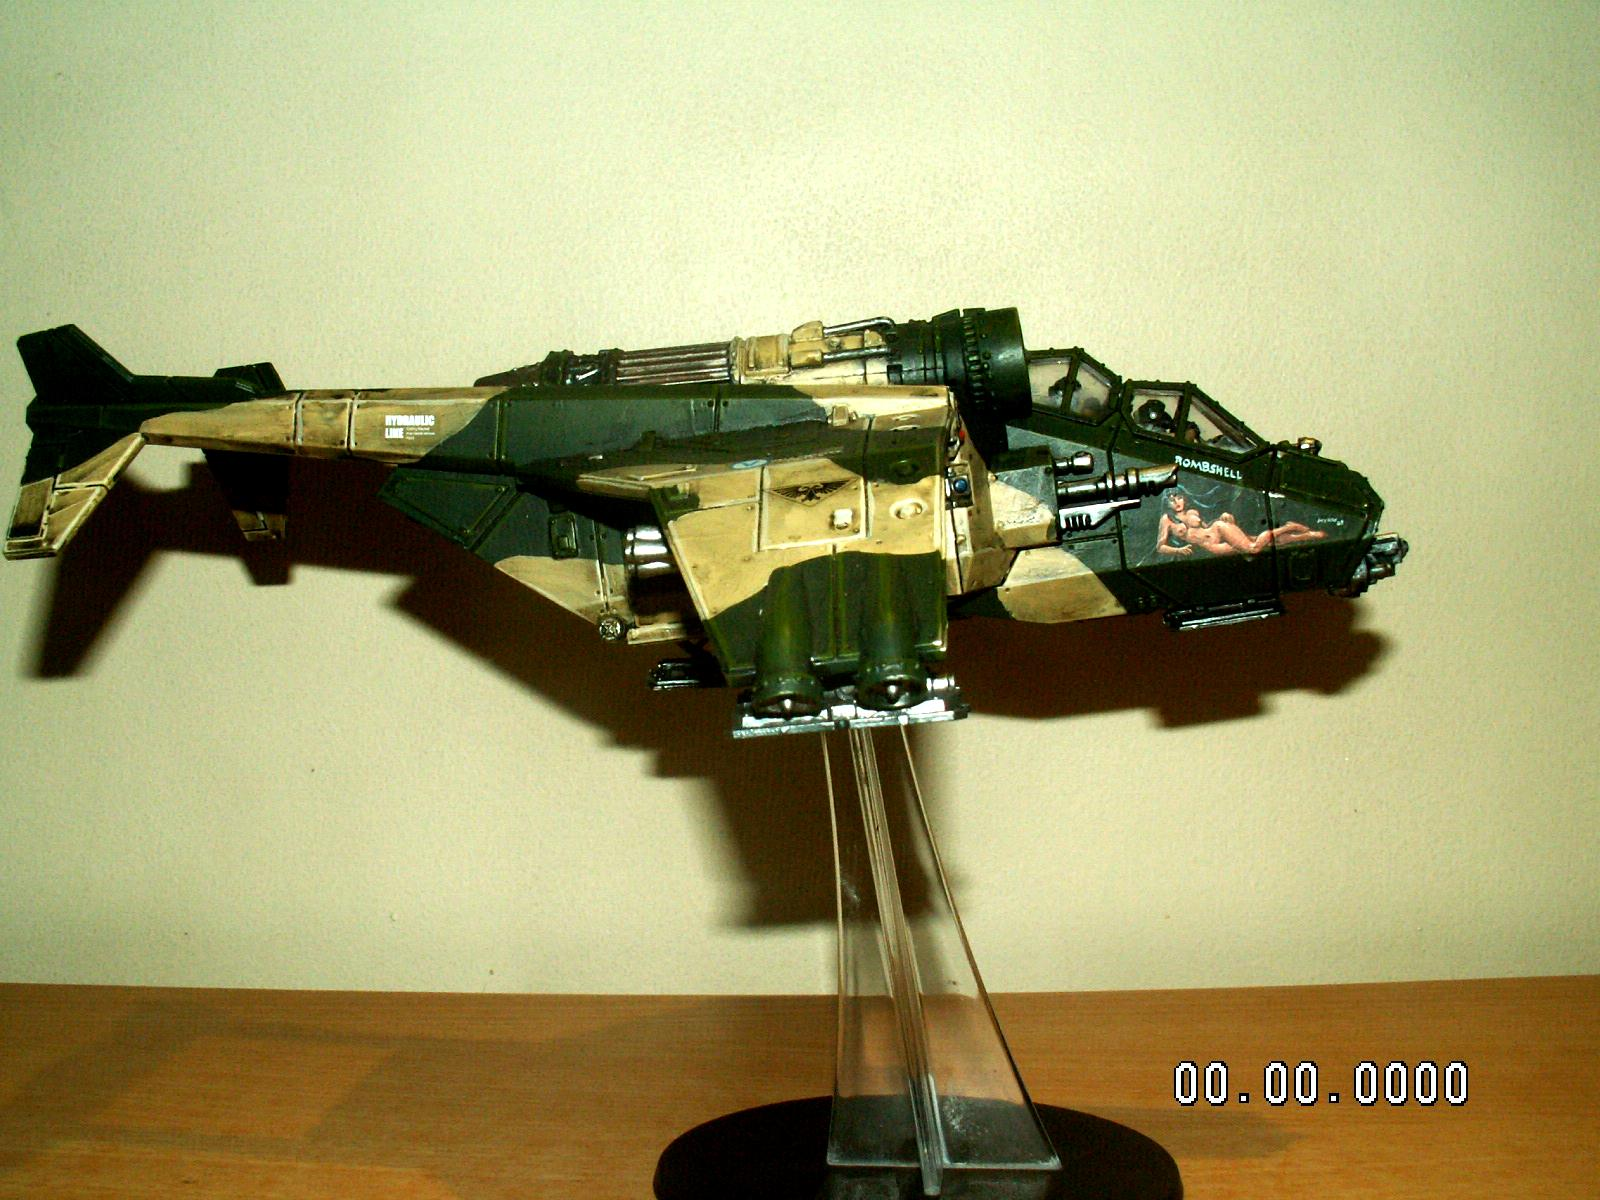 Camouflage, Freehand, Imperial Guard, Nose Art, Valkyrie, Warhammer 40,000